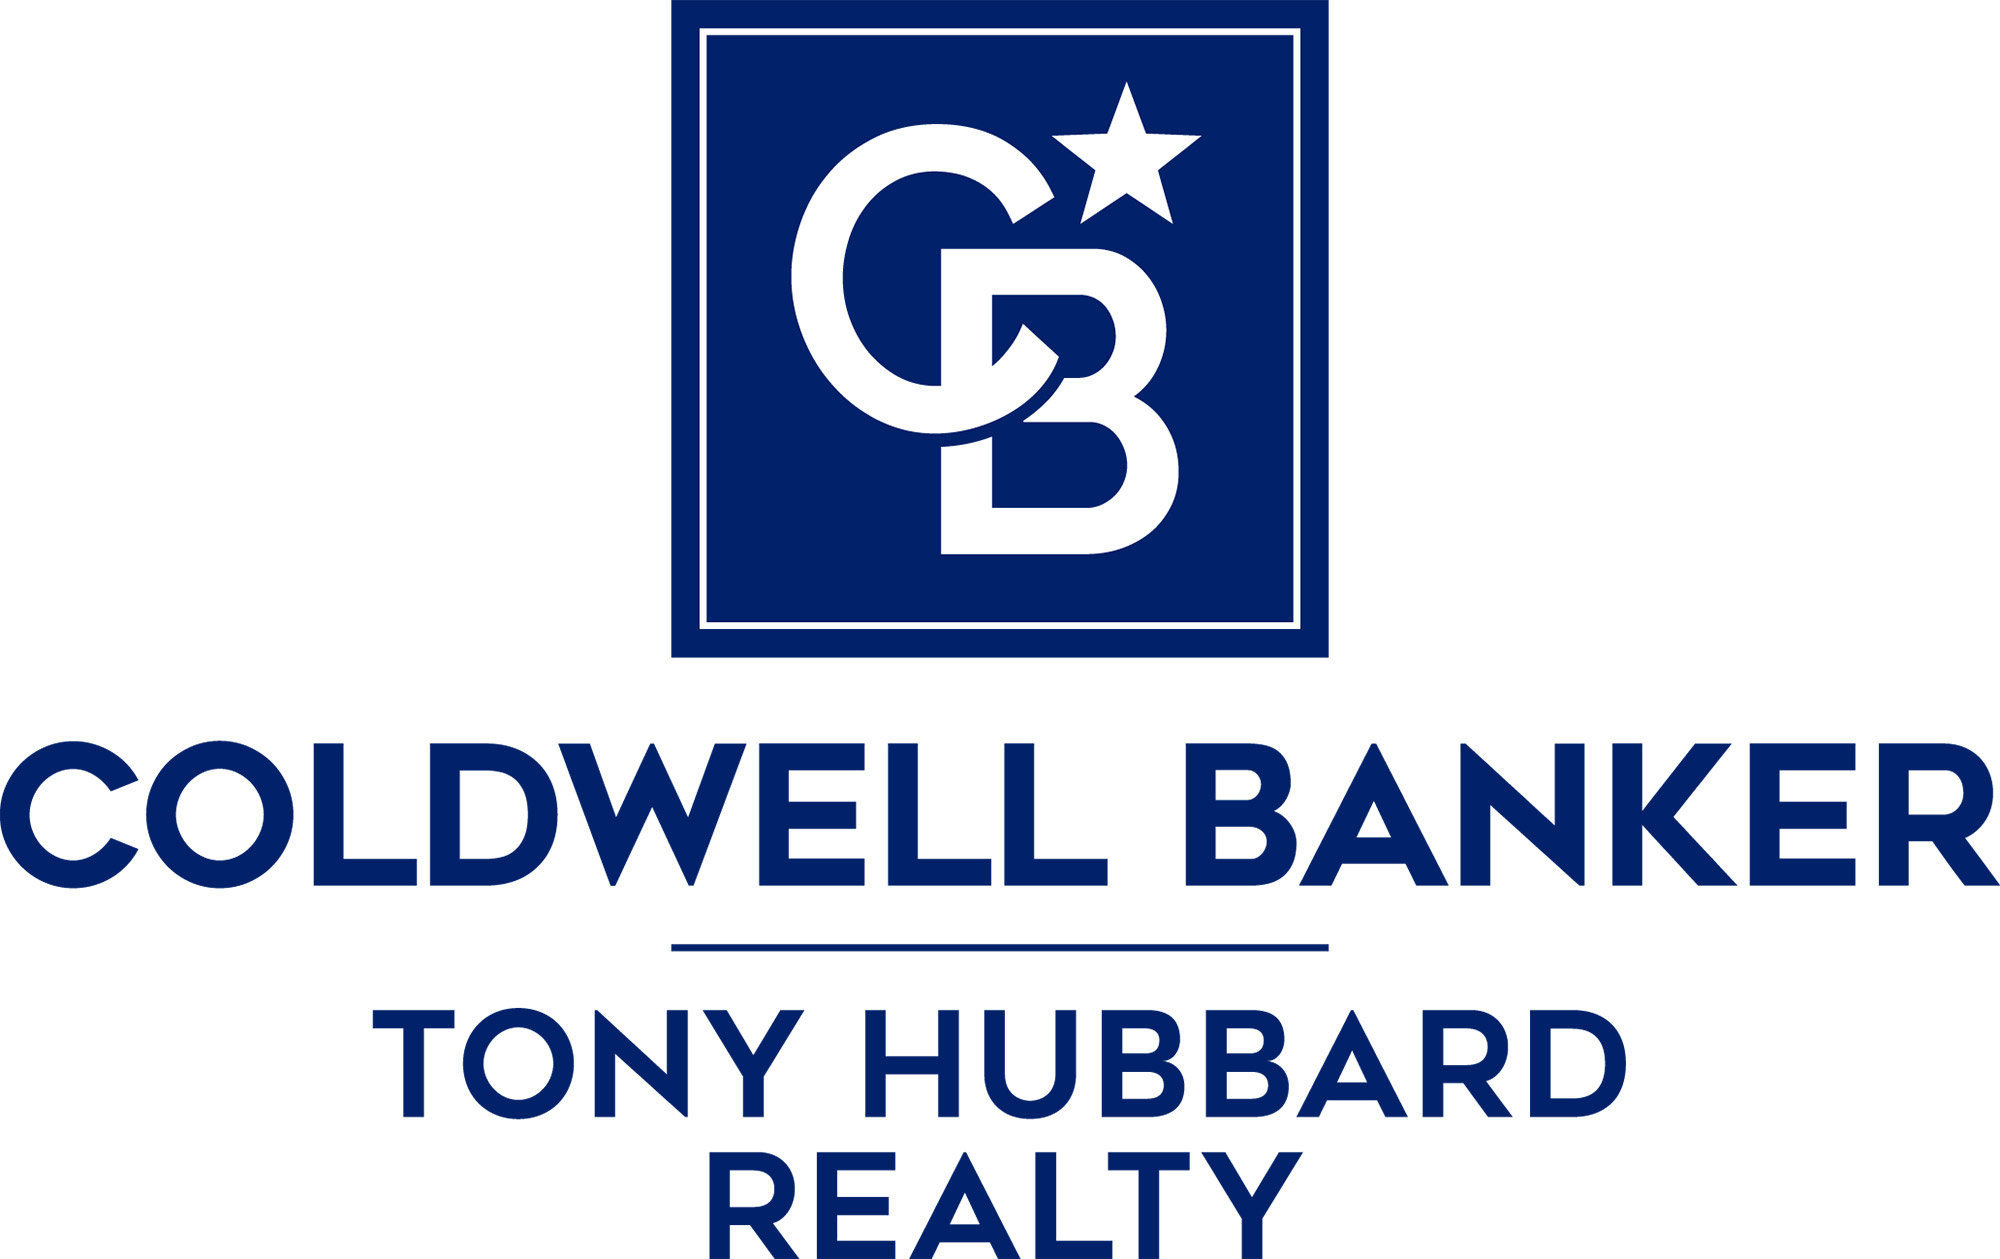 Office Manager - Coldwell Banker Tony Hubbard Logo